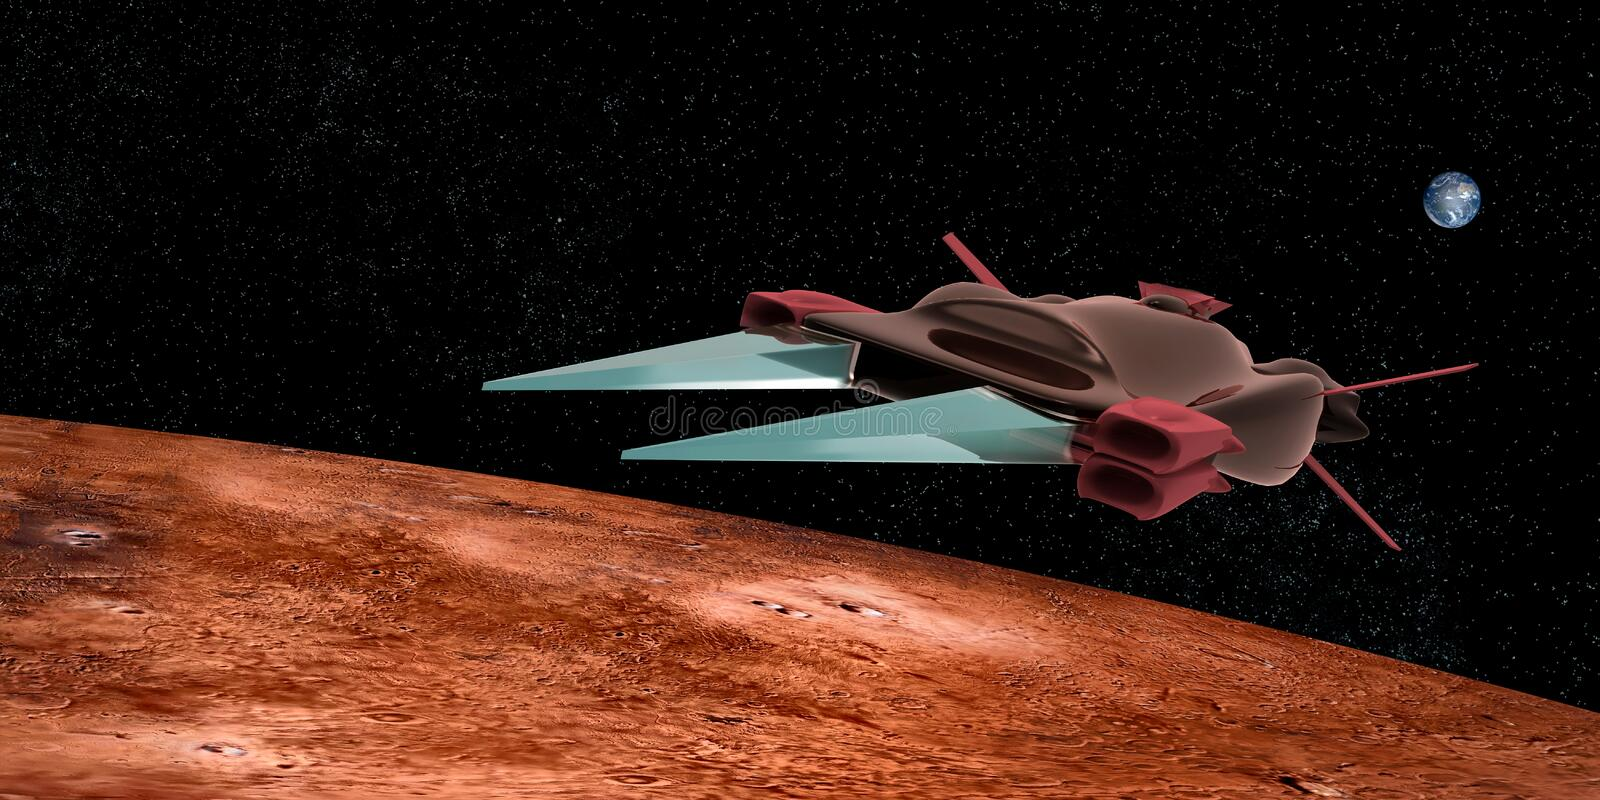 Extremely detailed and realistic high resolution 3D illustration of a space ship flying above Mars. stock illustration